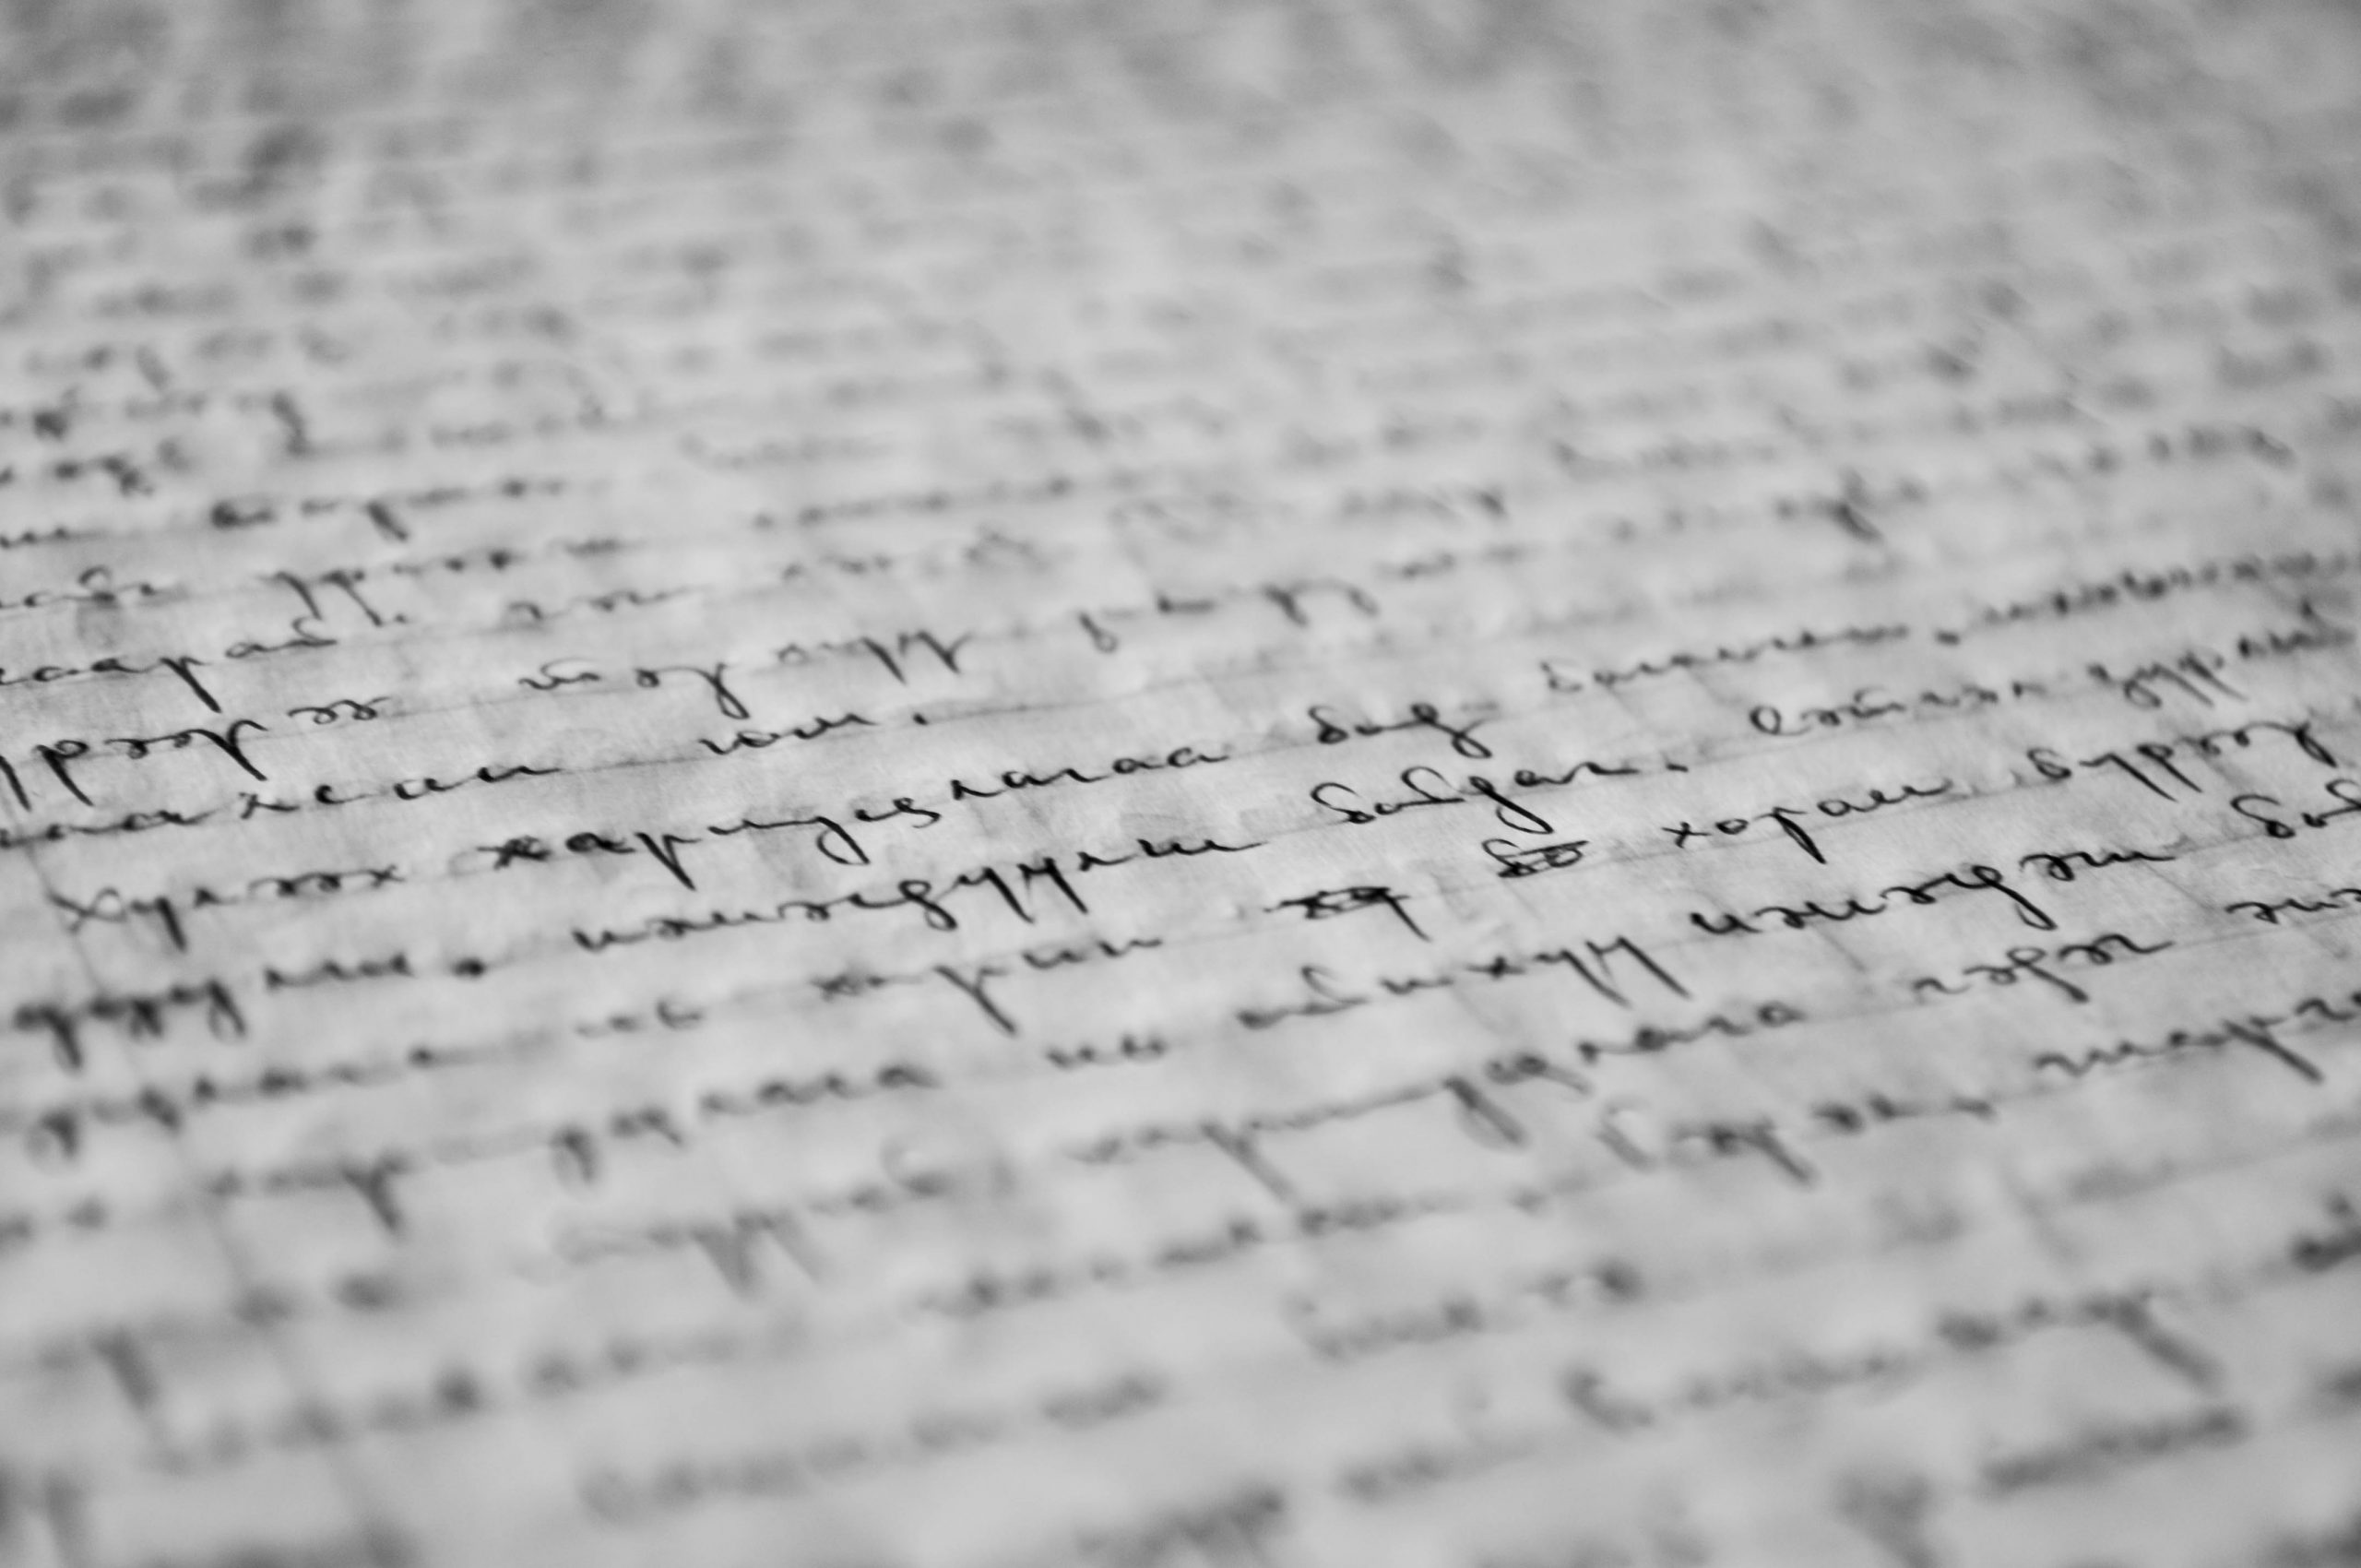 Could post-edited machine translation lead to an impoverishment of the target language?